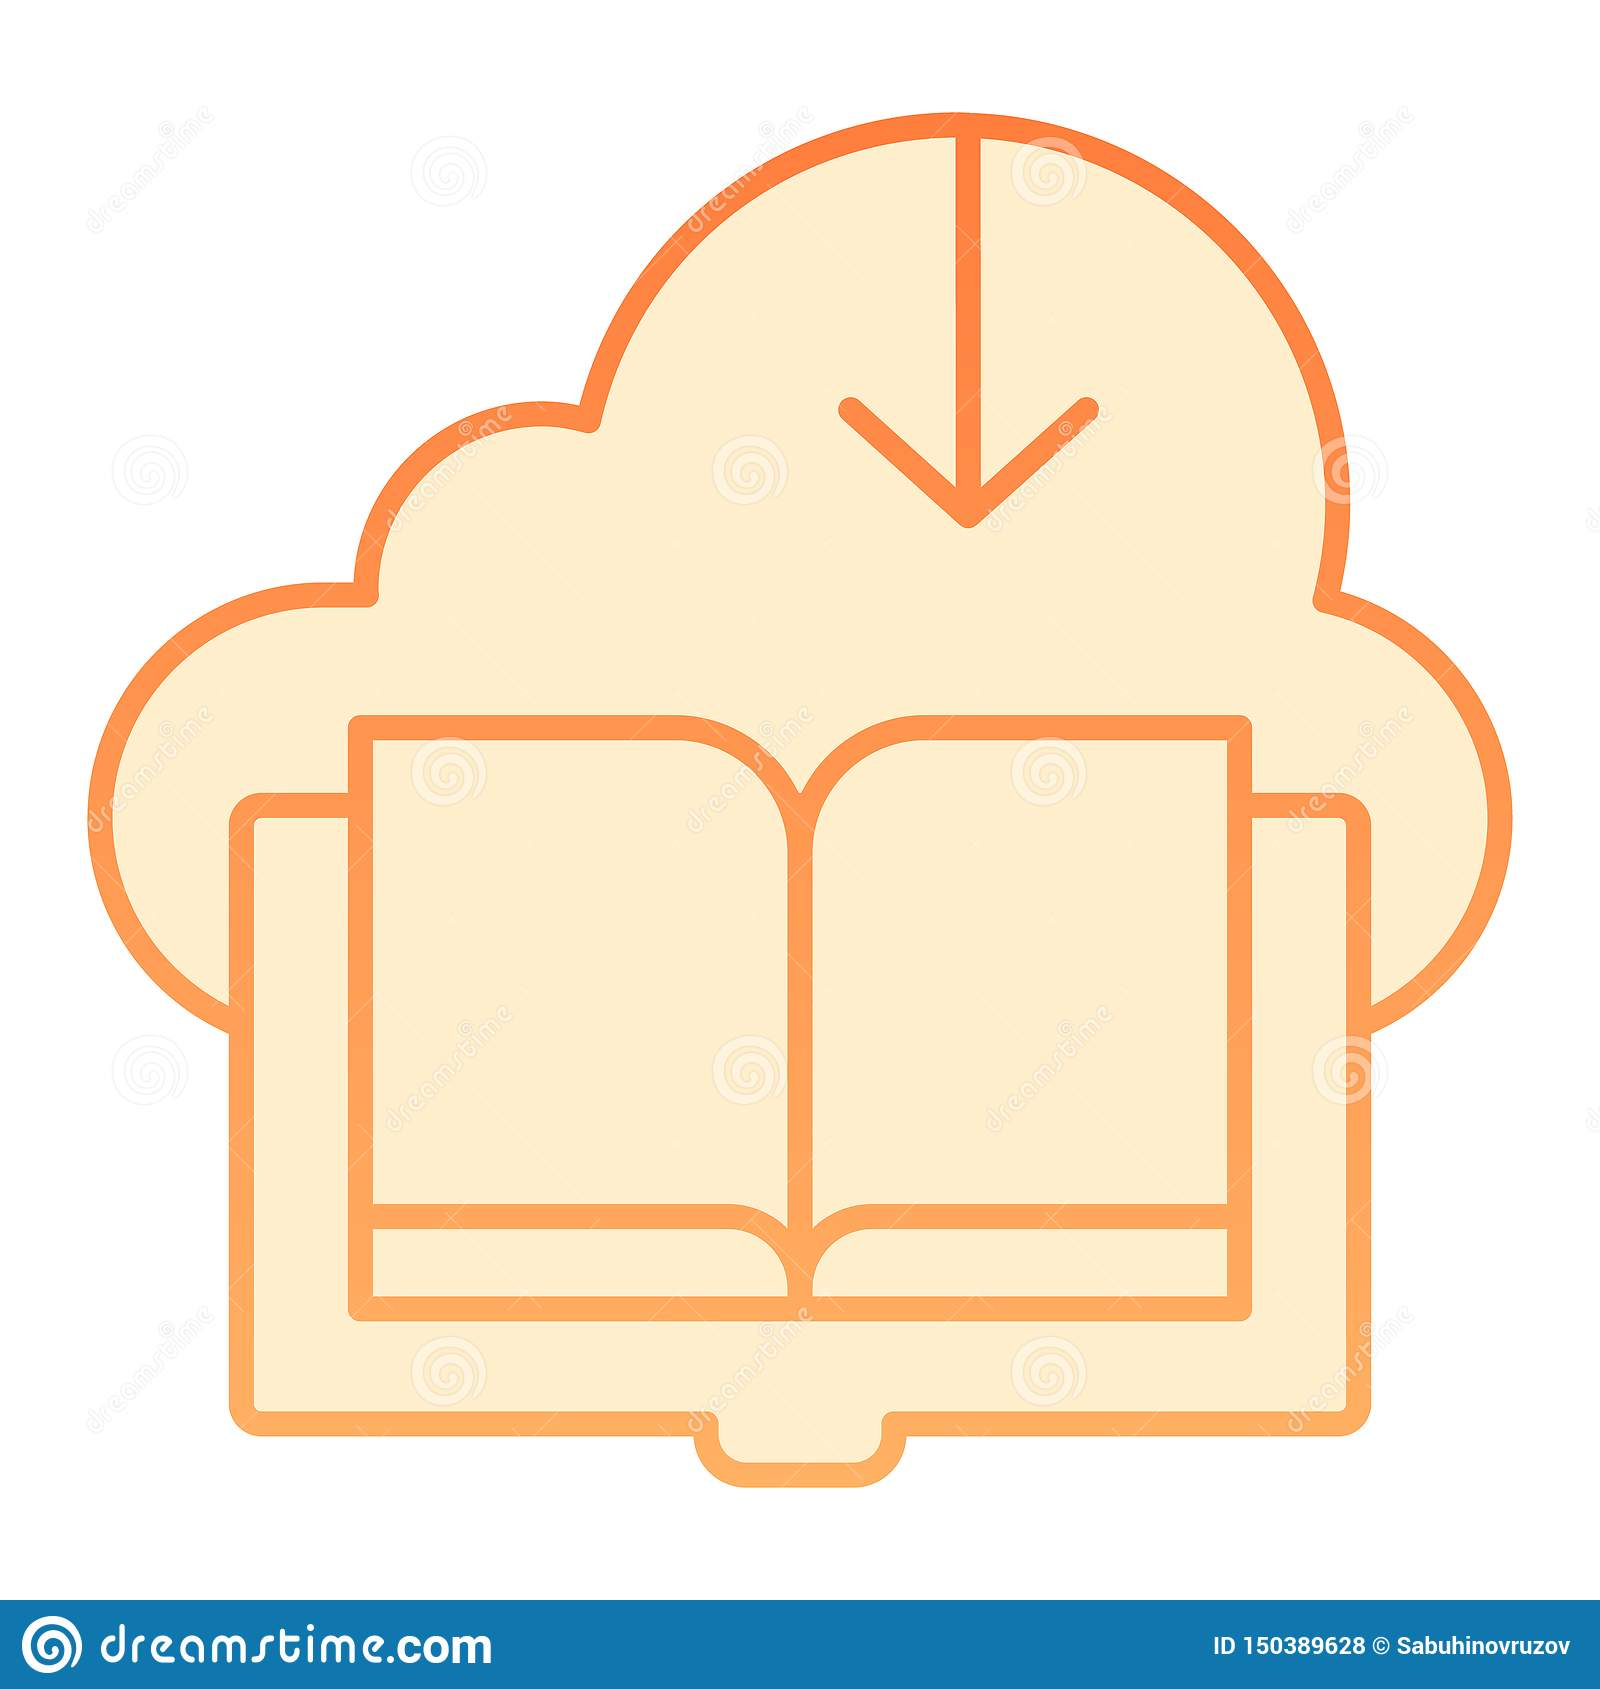 Download high quality ebook icon clip art from our collection of 66000000 clip art graphics. Downloaded Book Flat Icon Cloud With Book Orange Icons In Trendy Flat Style Save Ebook Gradient Style Design Designed Stock Vector Illustration Of Arrow Paper 150389628